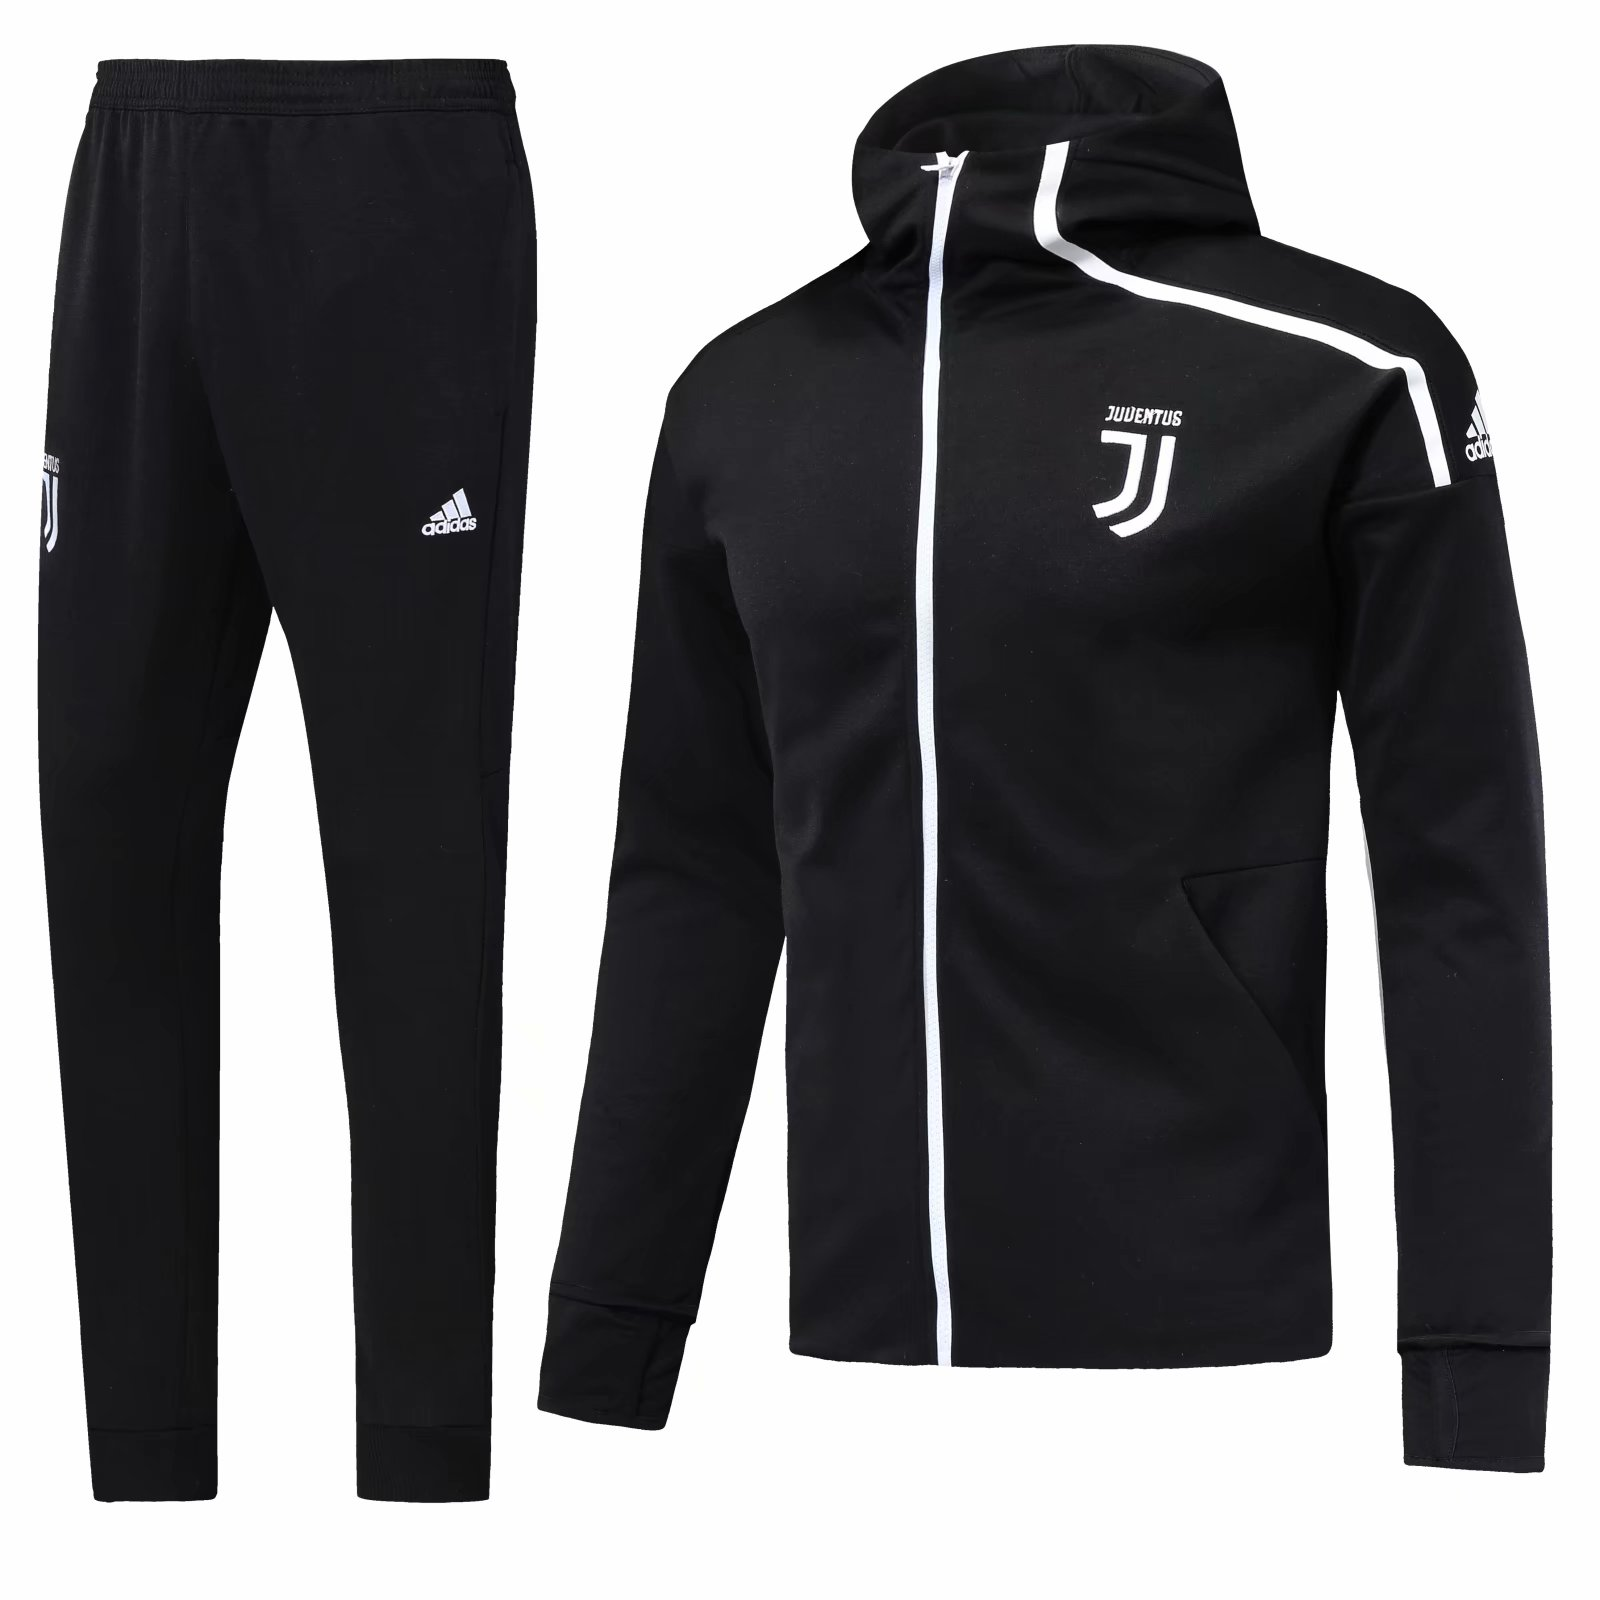 395b61409 Juventus 18 19 Black Hoodie Men Jacket Tracksuit Slim Fit in 2019 ...